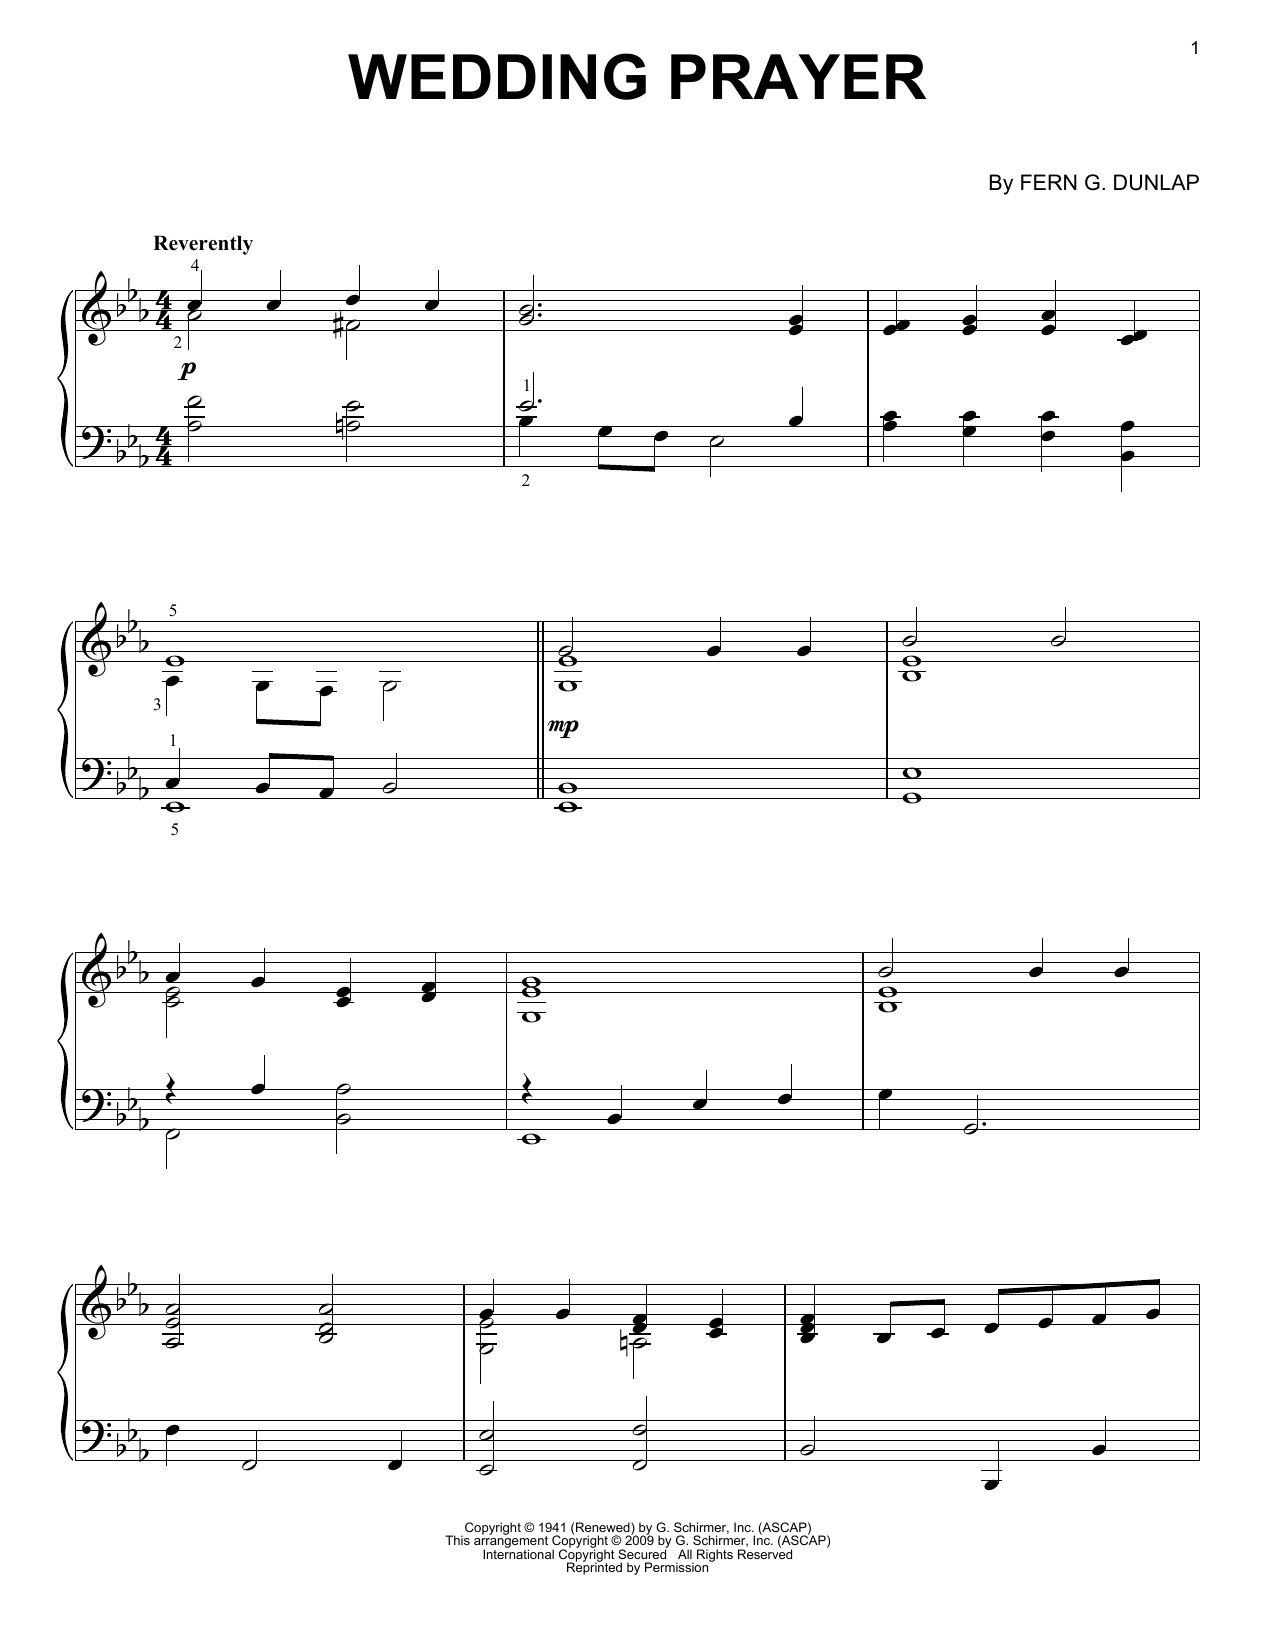 Download Fern G. Dunlap 'Wedding Prayer' Digital Sheet Music Notes & Chords and start playing in minutes